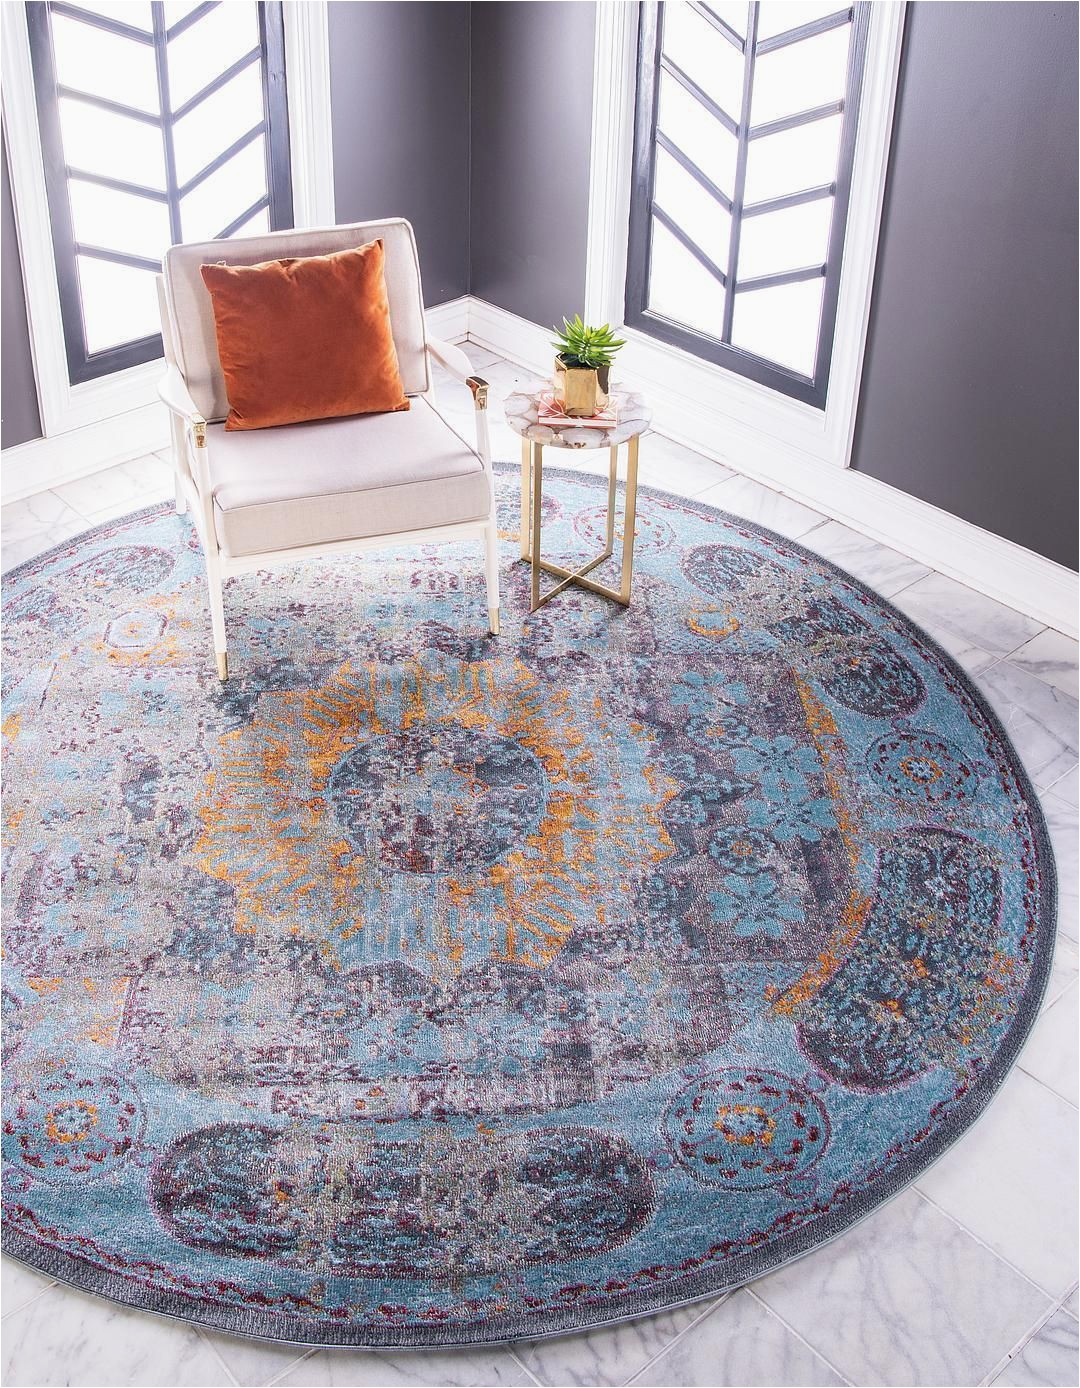 5 by 5 area Rugs Blue 5 5 X 5 5 Santiago Round Rug area Rugs